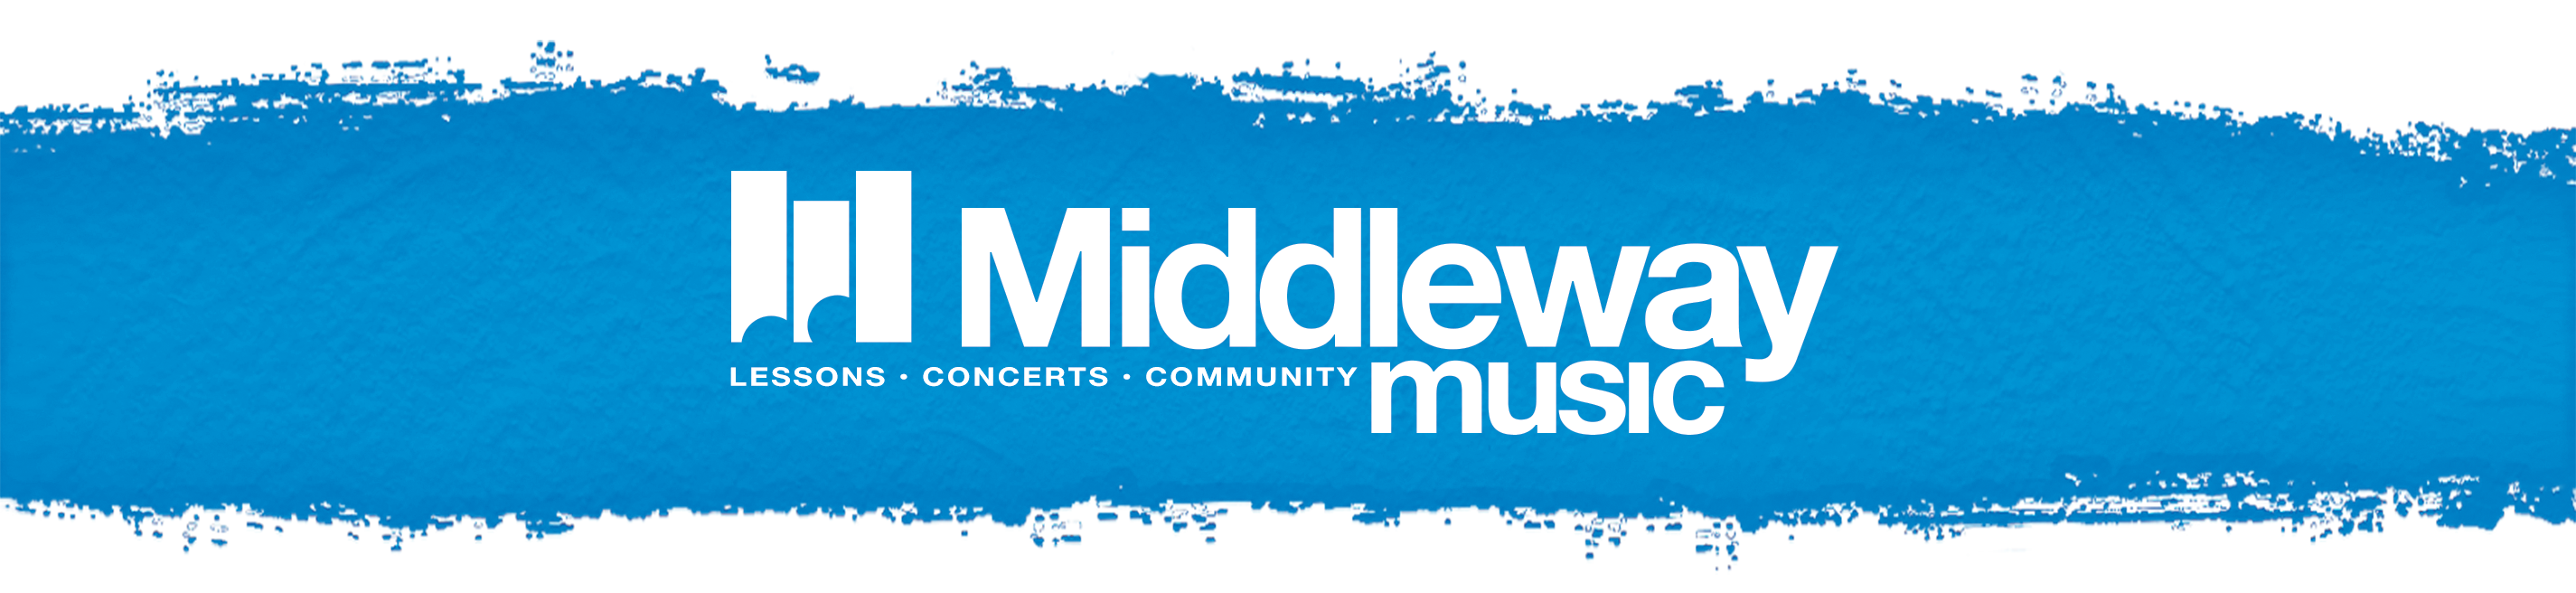 Middleway Music